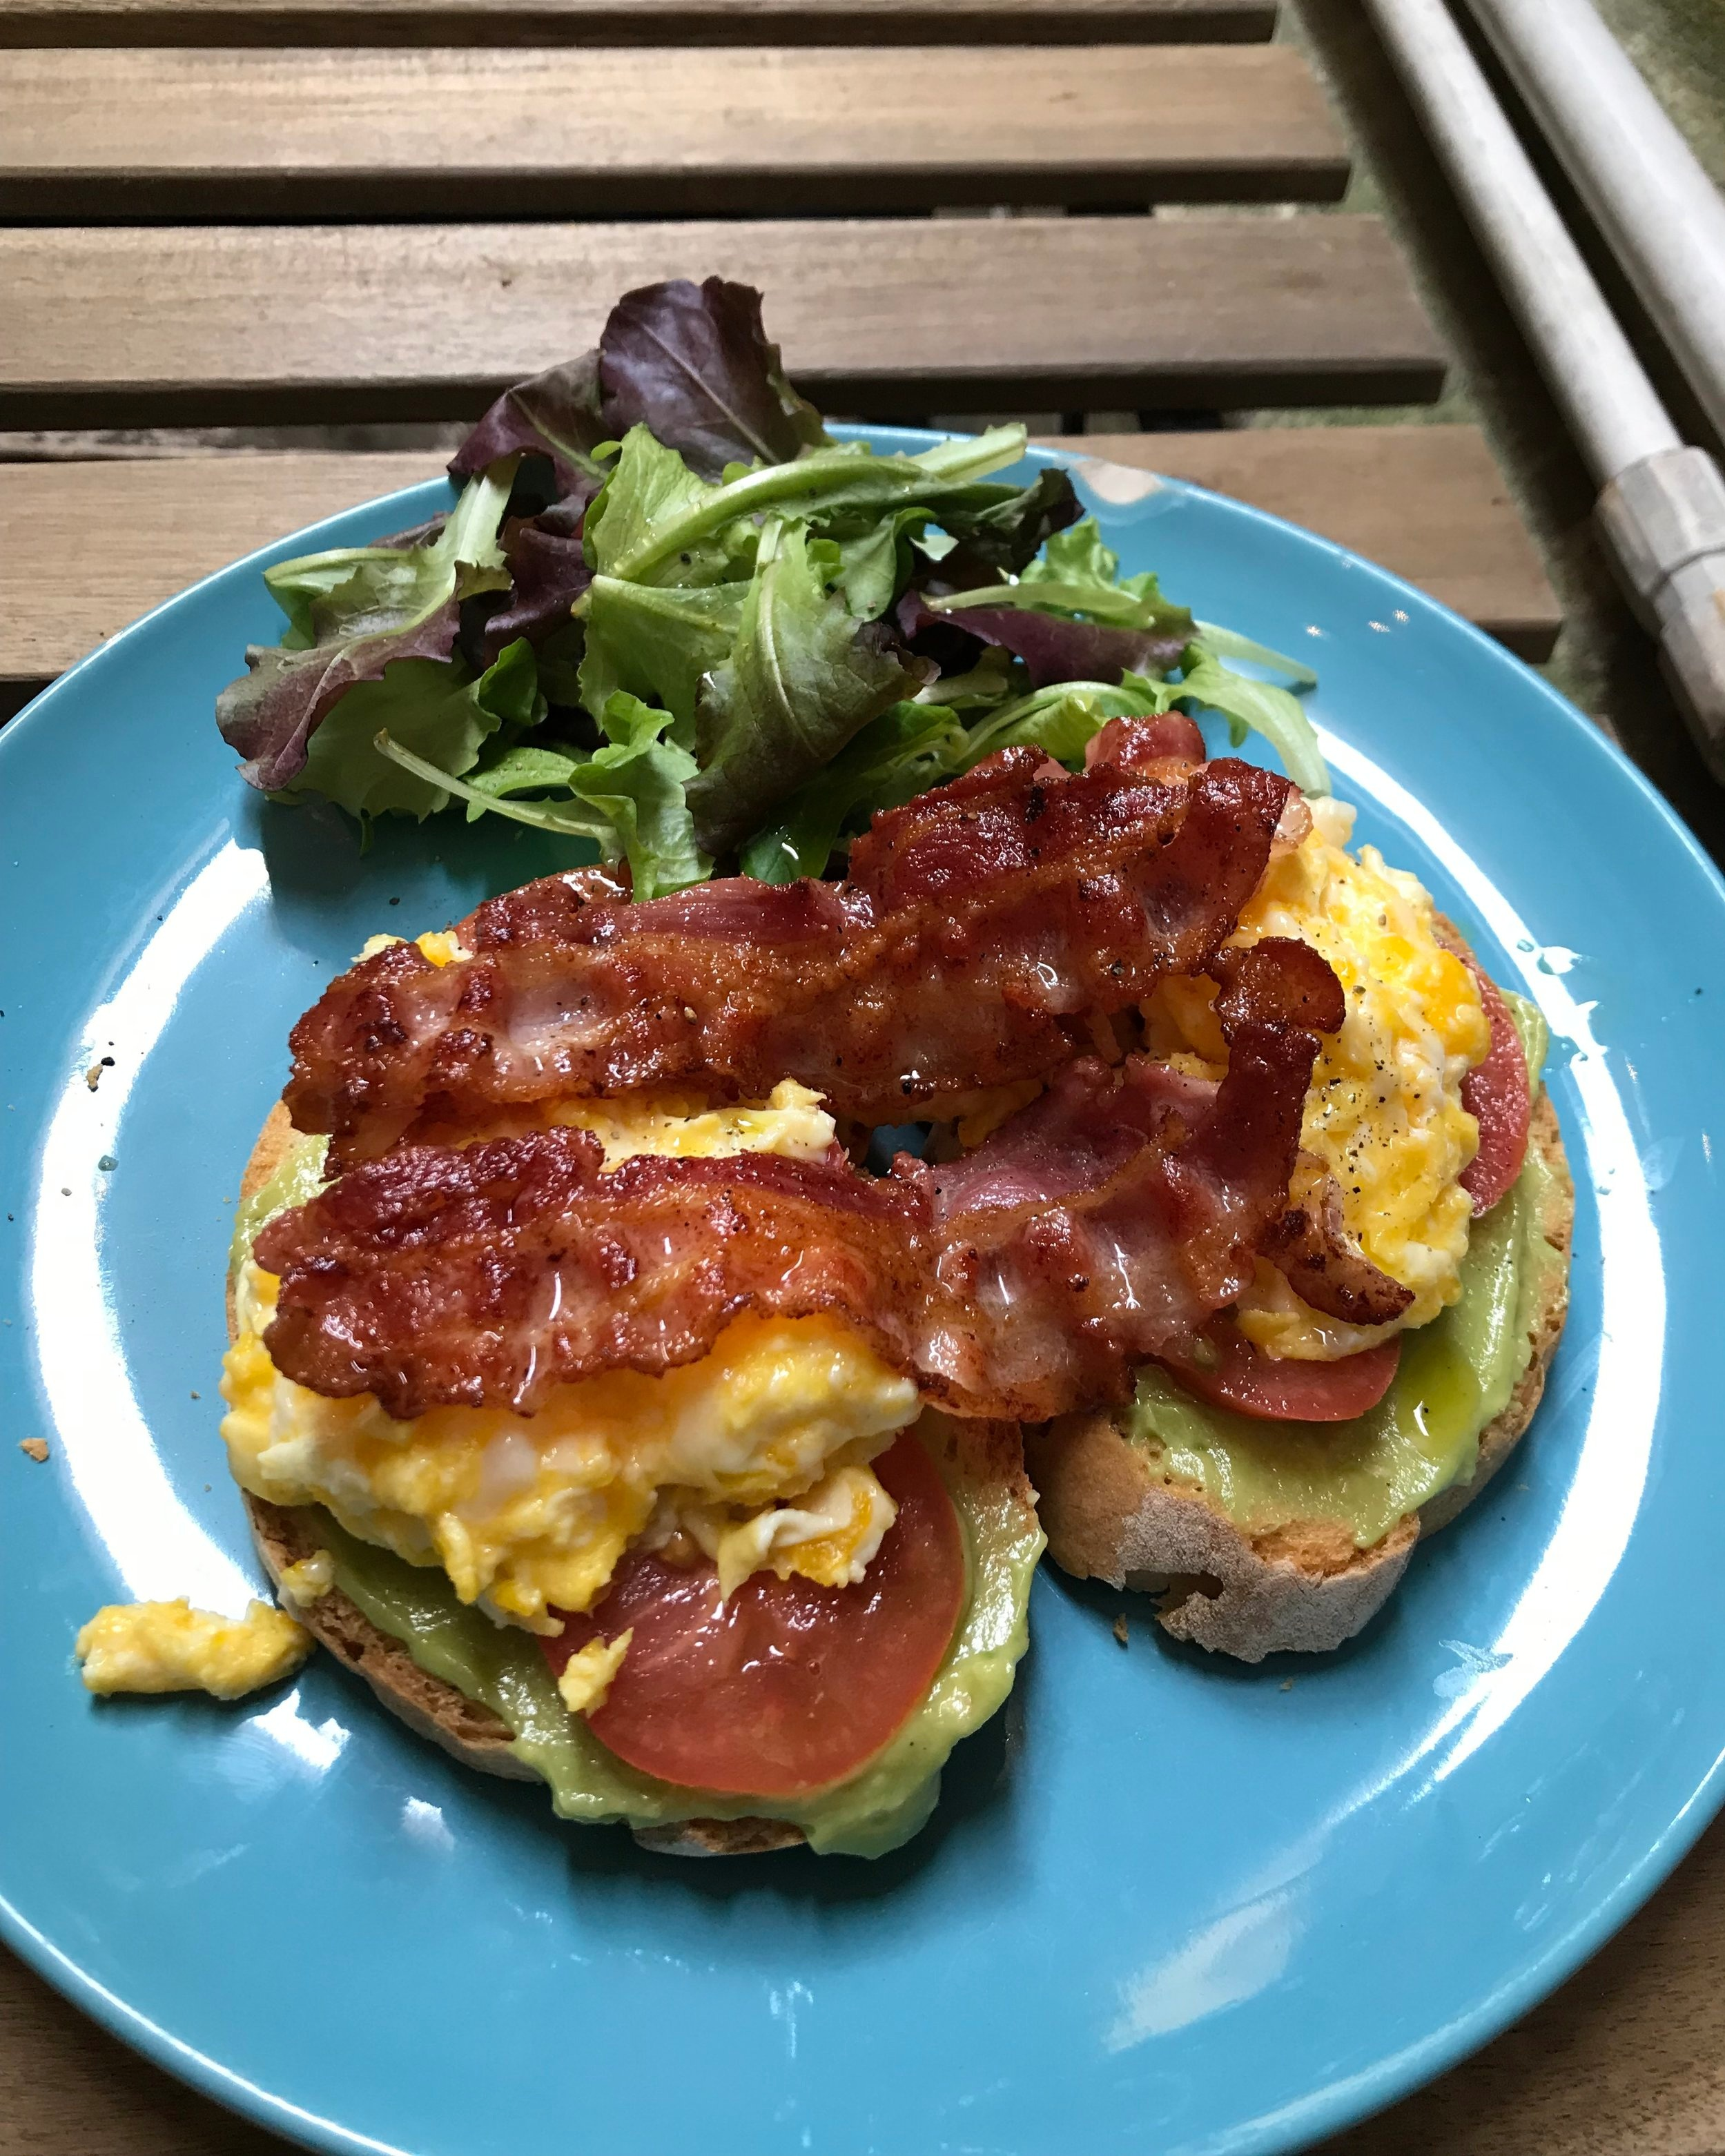 Bacon avocado and scrambled eggs on toast at Filter Coffee Lab